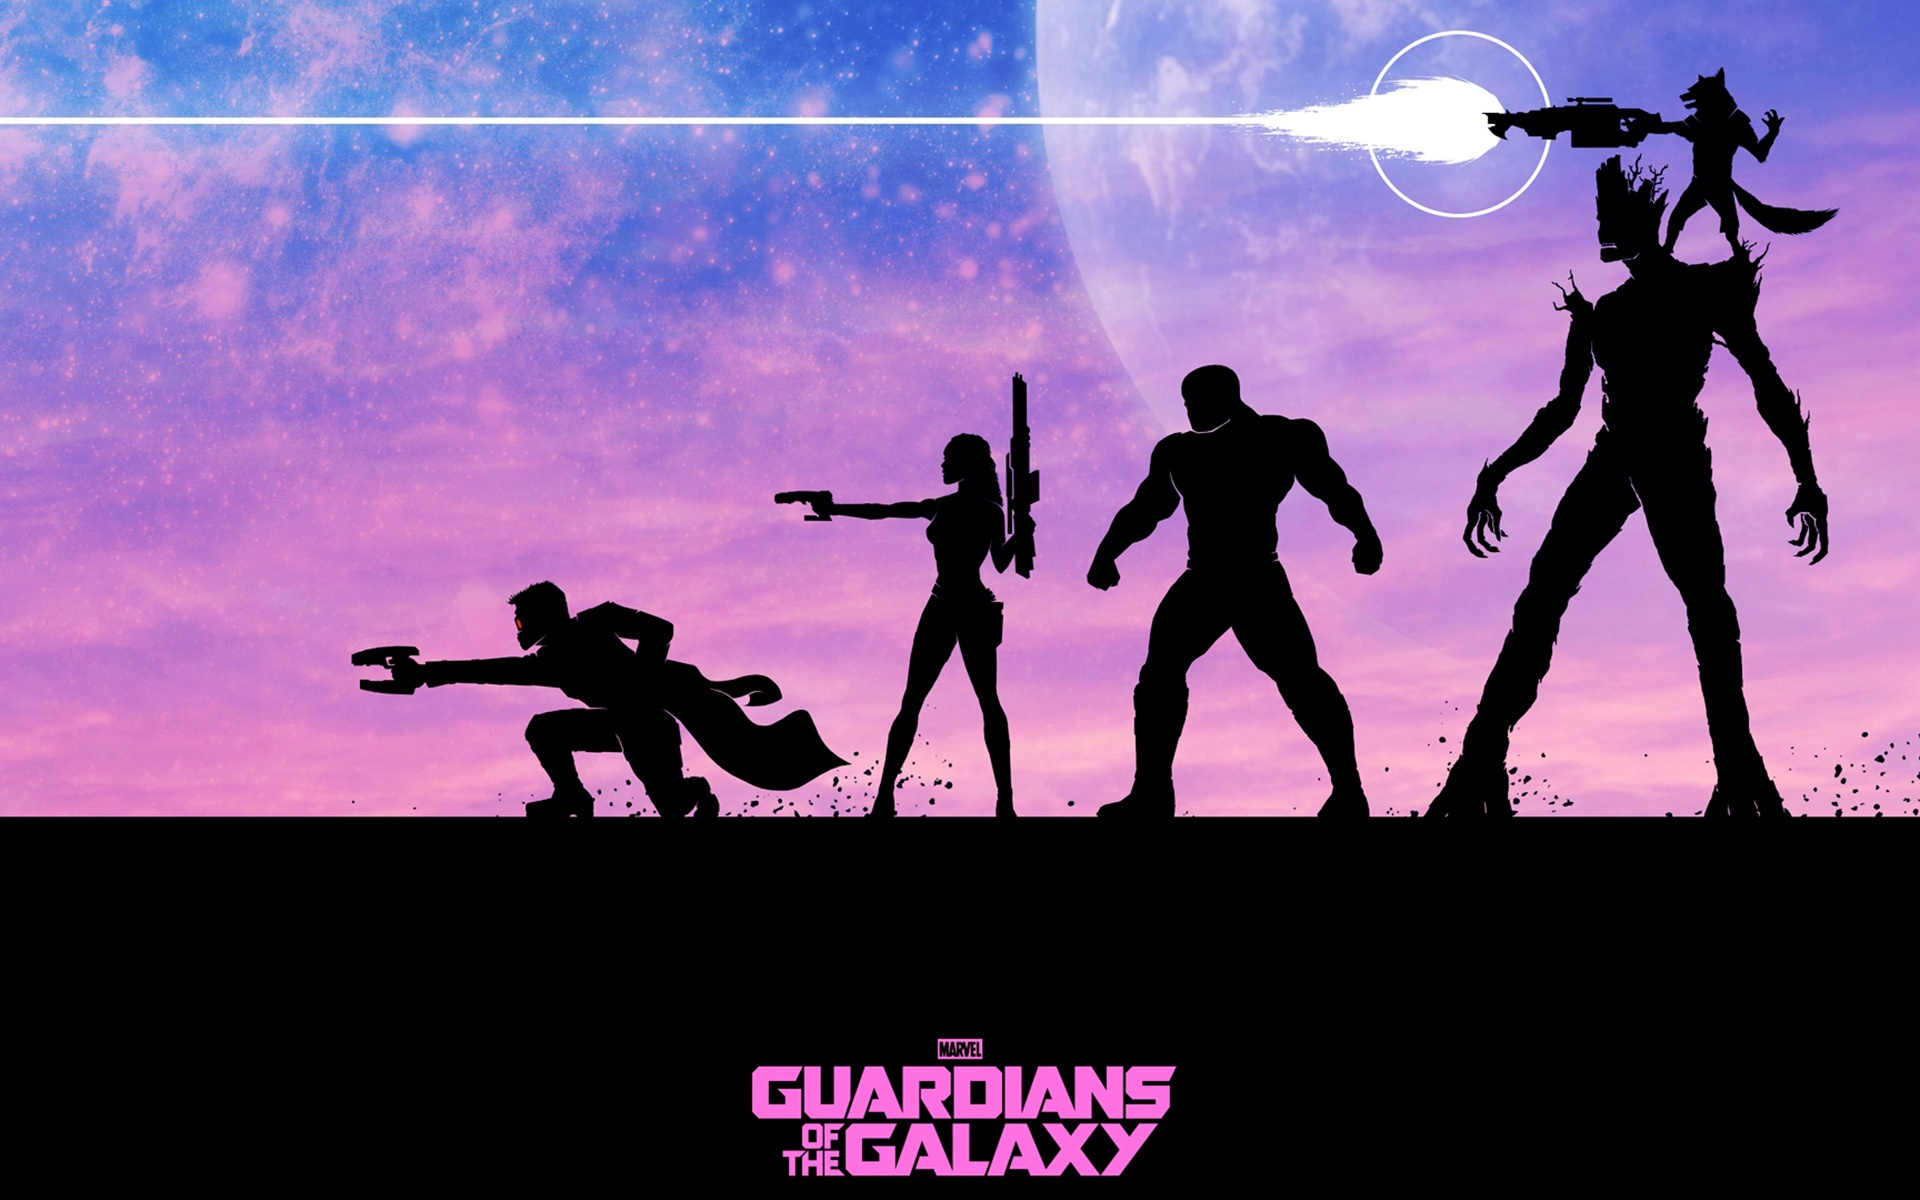 1920x1200 Guardians Of The Galaxy Movie 2014 Wallpapers In Jpg Format For